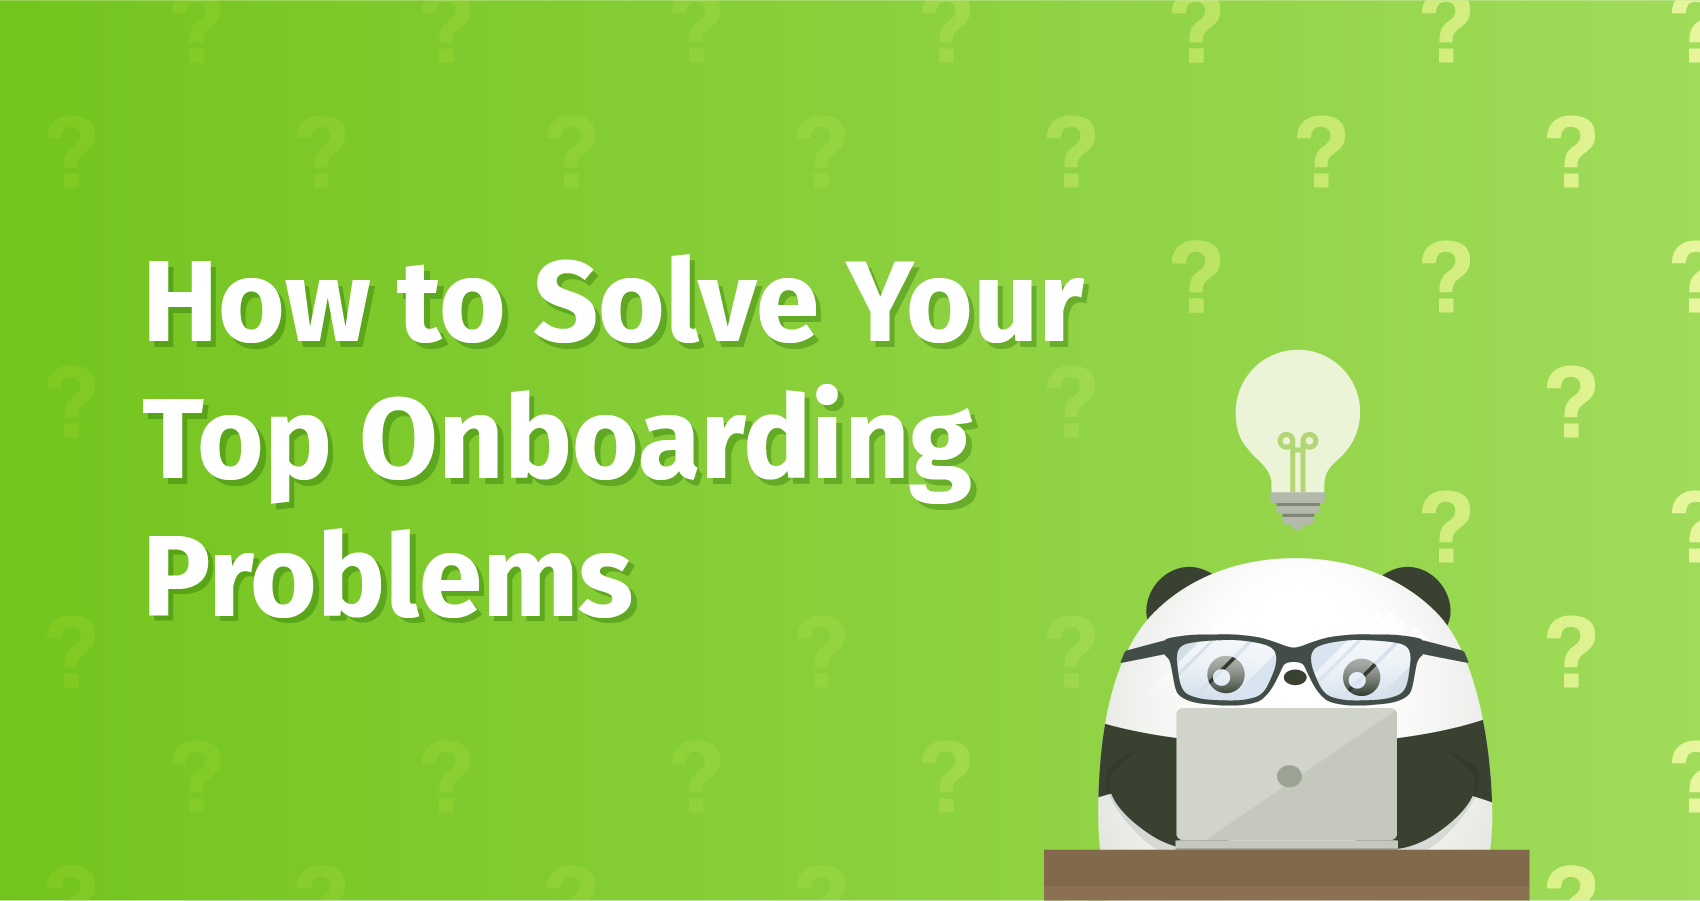 How to Solve Your Top Onboarding Problems